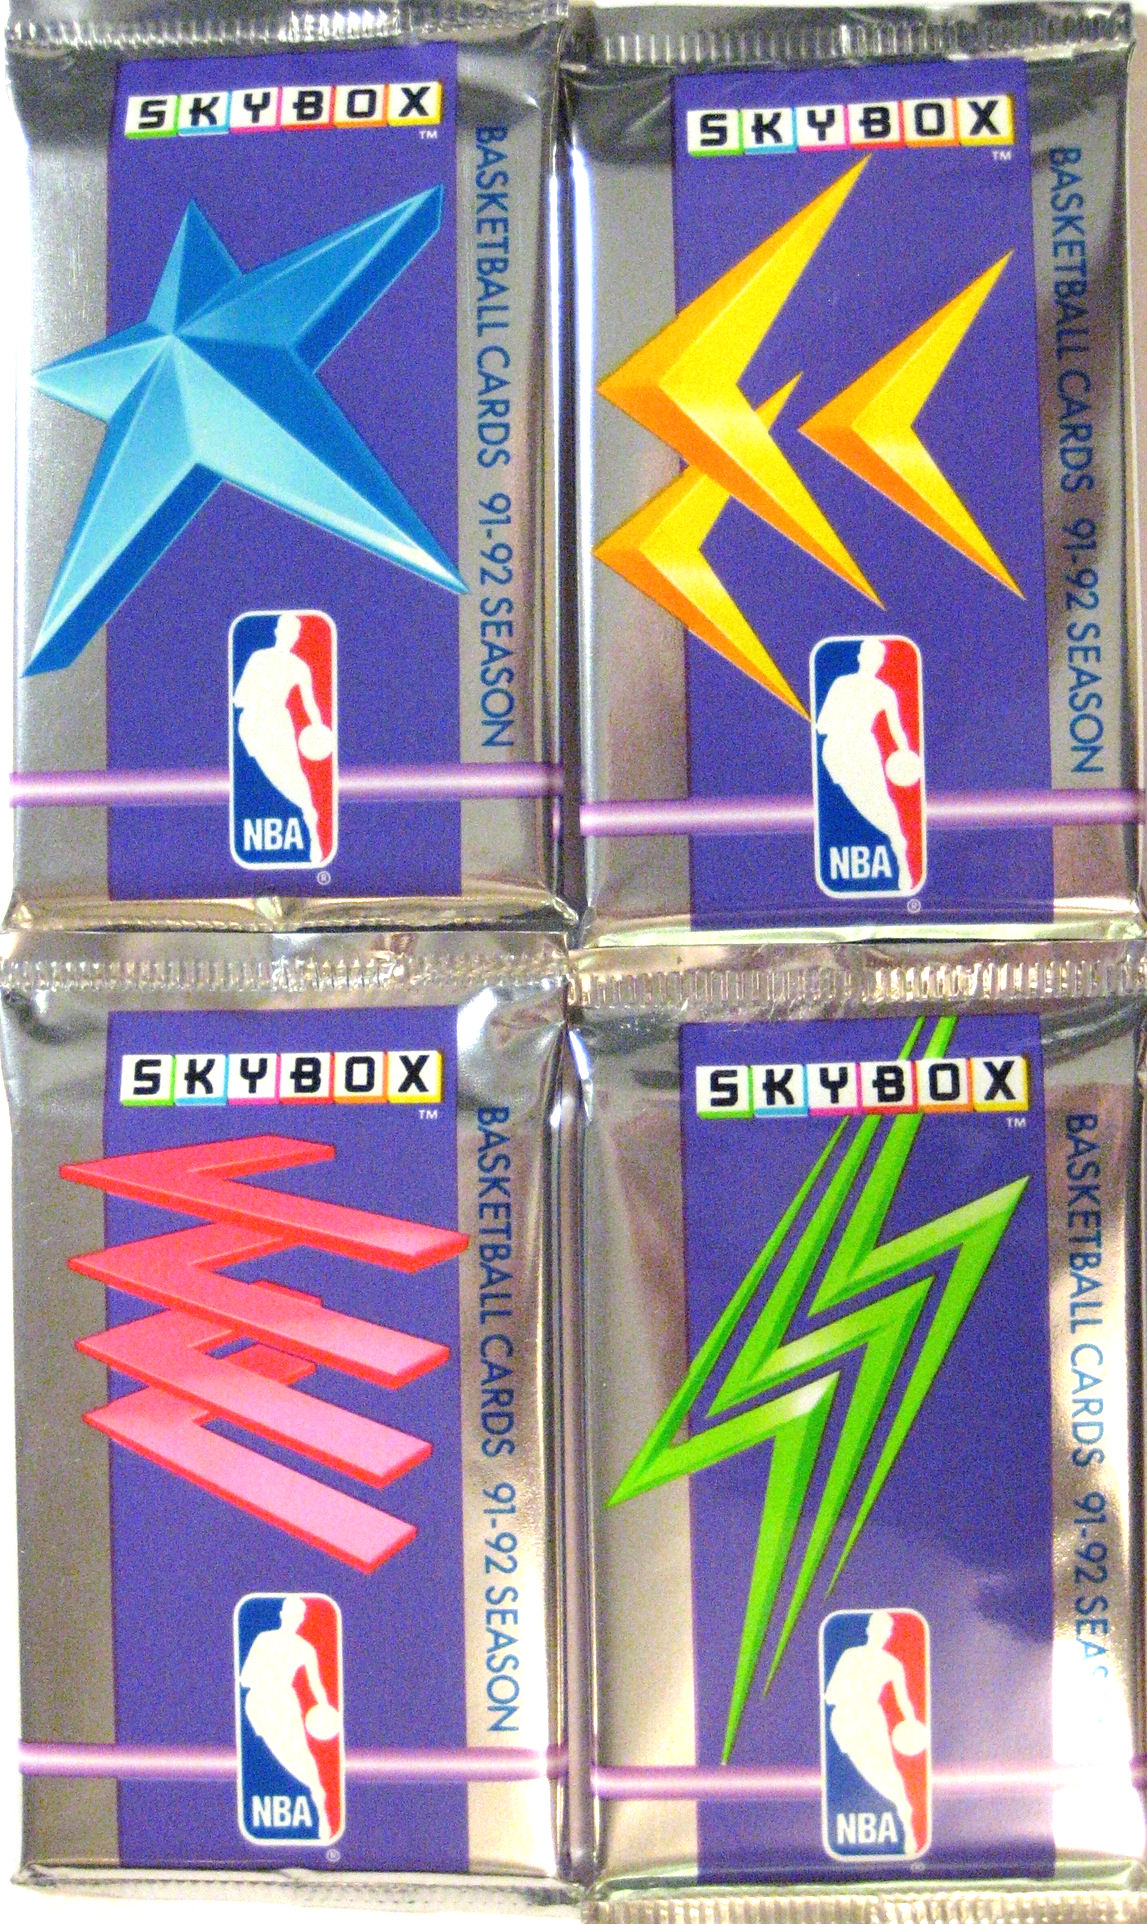 1991-92 Skybox Basketball Series 1 Pack: This is the second edition of skybox's foray into basketball cards, and the packs include 4 different designs. This series is particularly special to me, because these were the first cards that I purchased in a store when I was a kid.